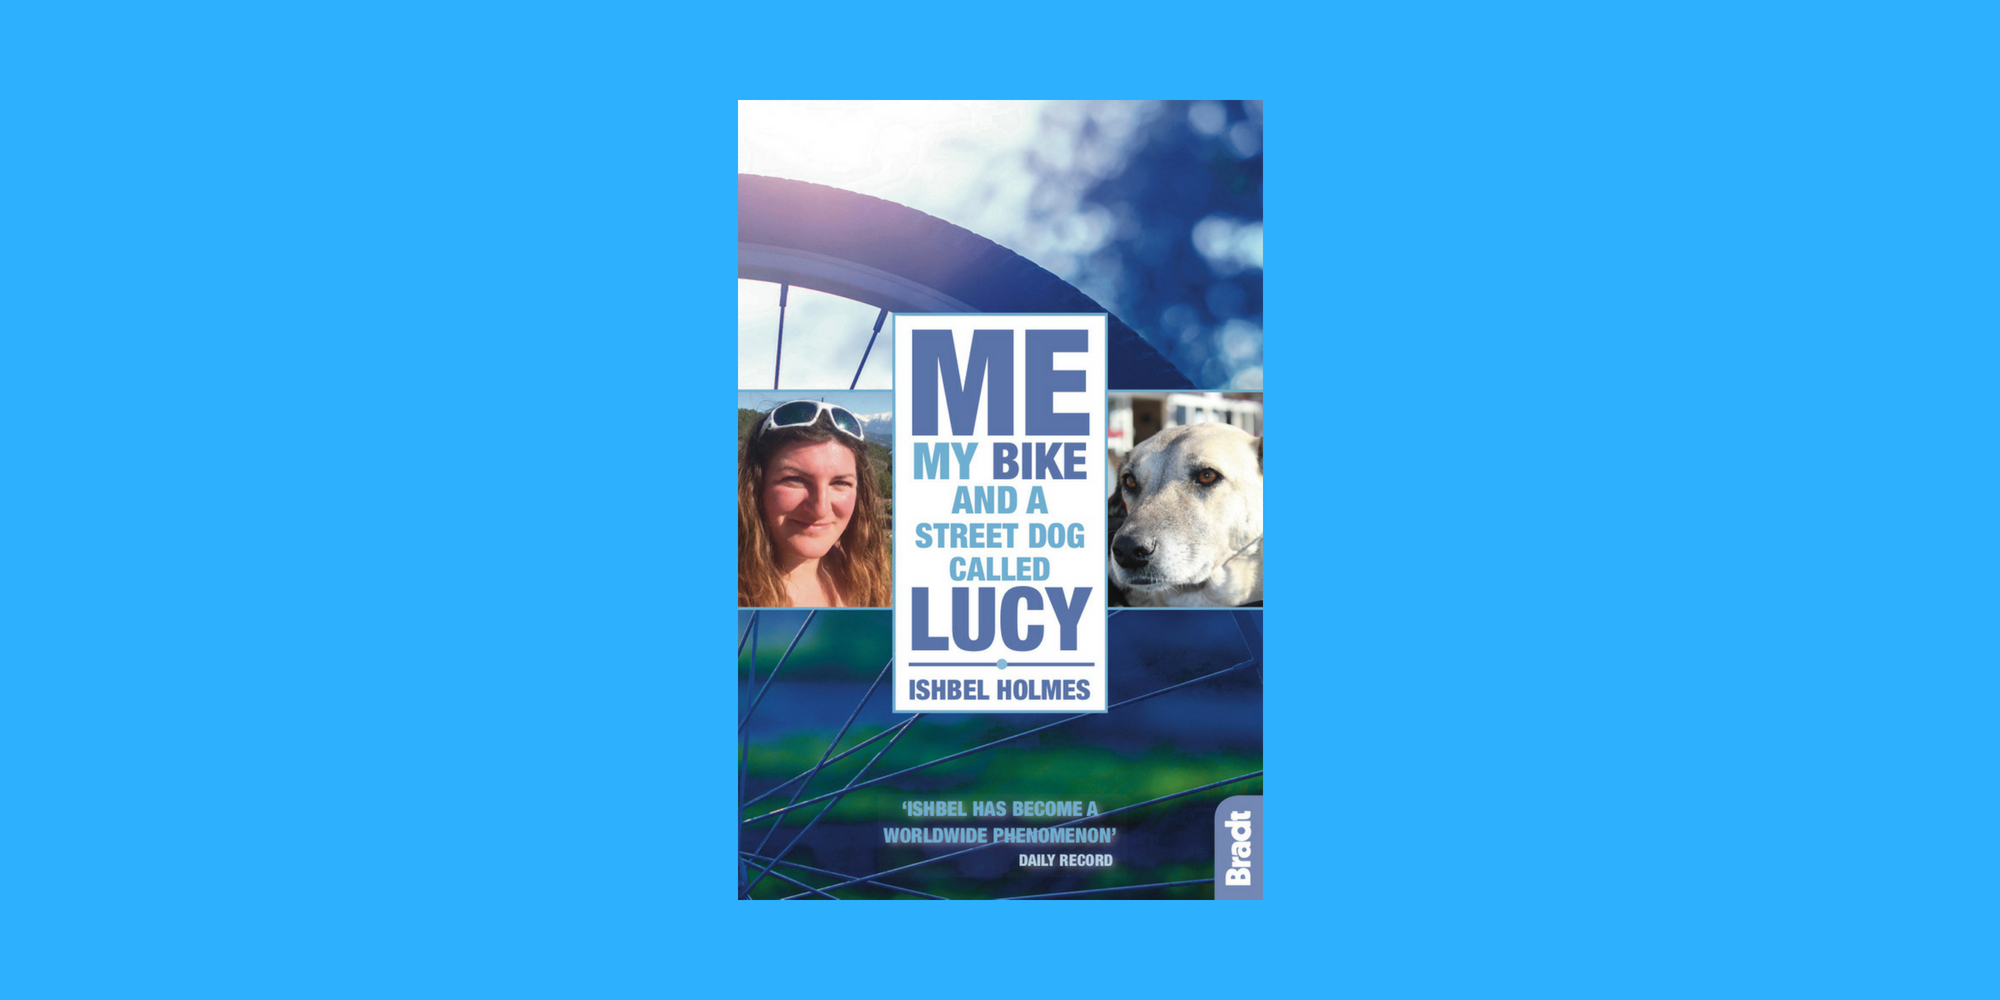 Pre-order book in UK: ME, MY BIKE AND A STREET DOG CALLED LUCY